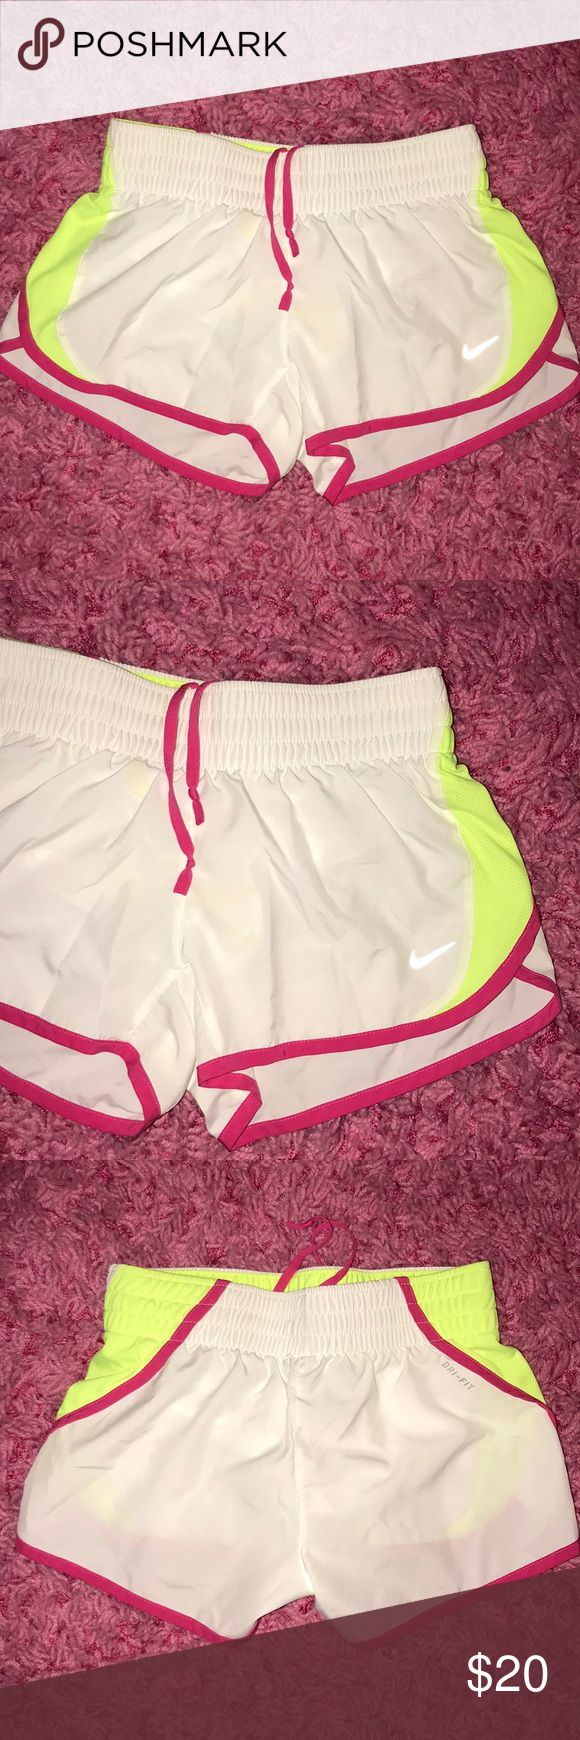 NWOT Nike Neon Shorts✔️ NWOT Nike Neon Shorts. Perfect condition. Have built in underwear type briefs as seen in picture Nike Shorts